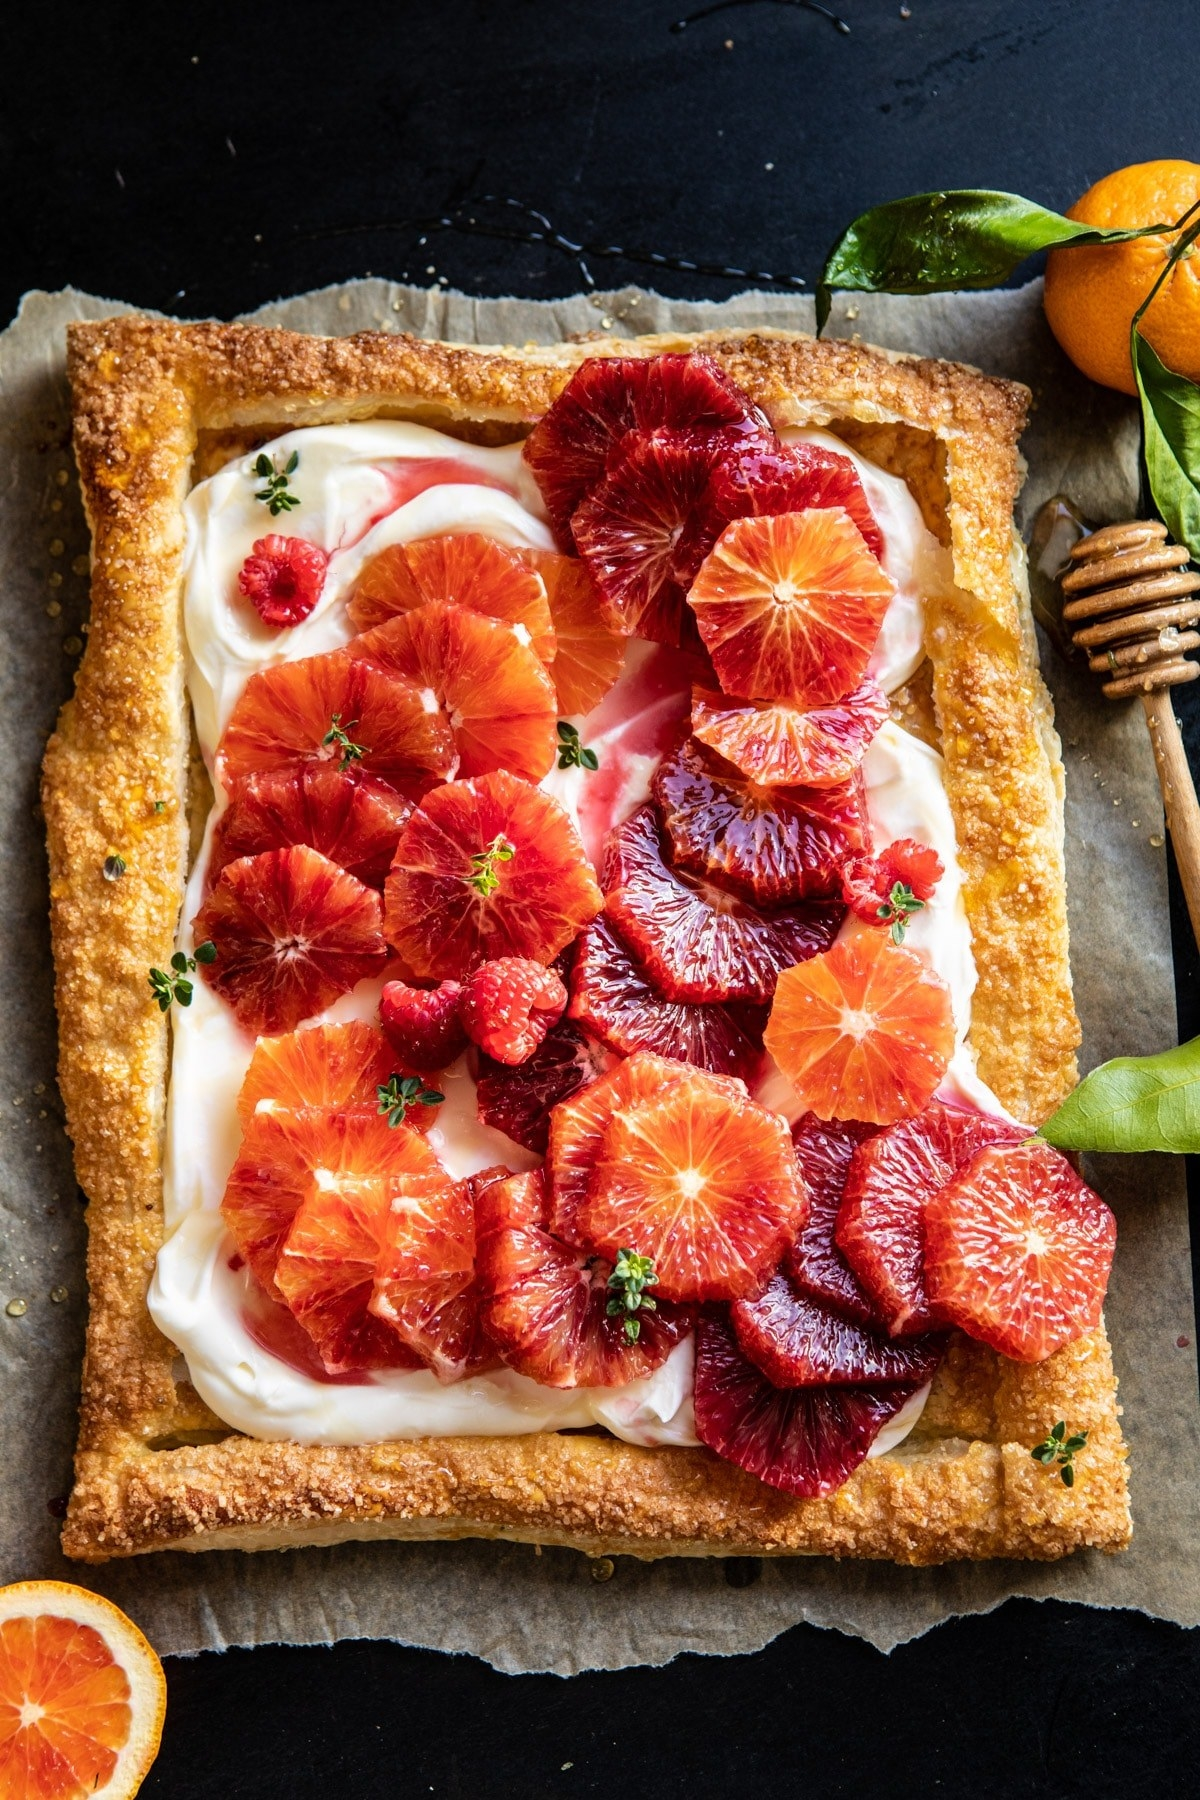 Although this tart may look like a ton of work, it's actually pretty simple. The hardest part will be cutting the citrus into nice rounds, but after that it's a breeze. Get the recipe.